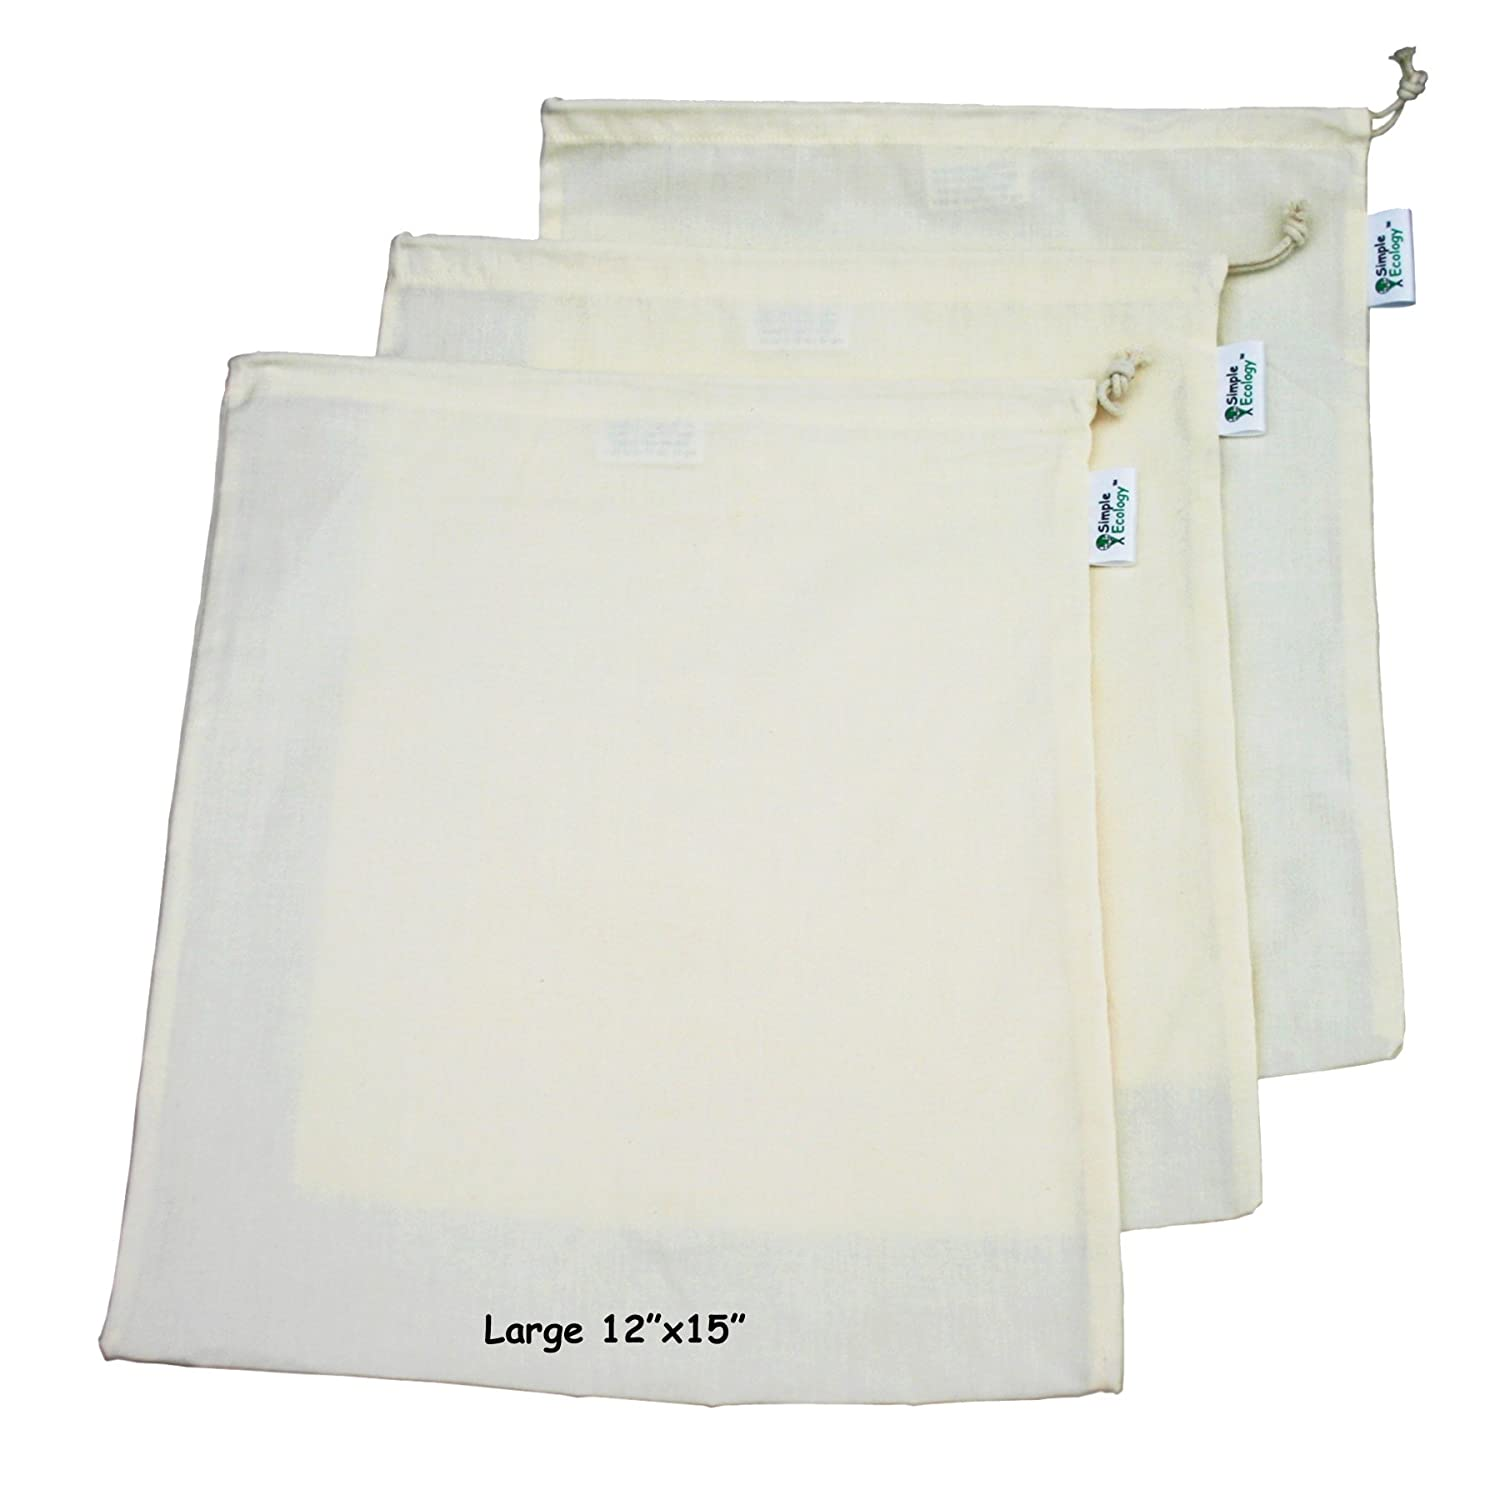 Set of 6 by Simple Ecology Simple Ecology Organic Cotton Muslin Produce Bag 2 each of Lg., Med. /& Sm.